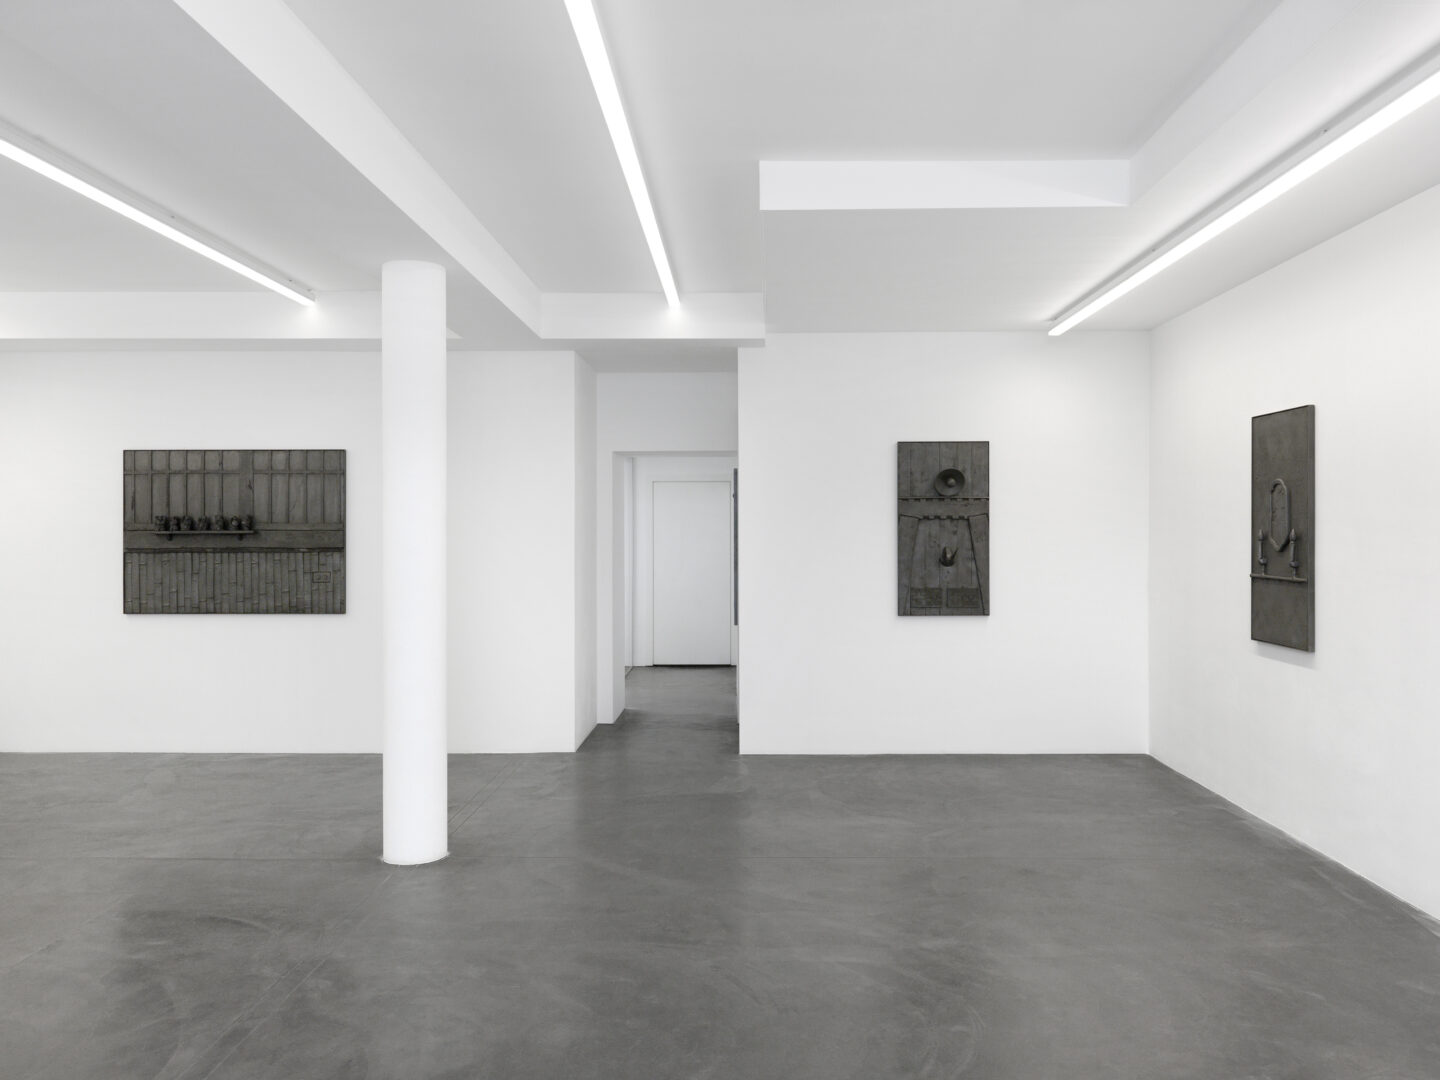 Exhibition View Rico Weber Soloshow «Silver Dust» at Galerie Maria Bernheim, Zurich, 2020 / Photo: Annik Wetter / Courtesy: Galerie Maria Bernheim